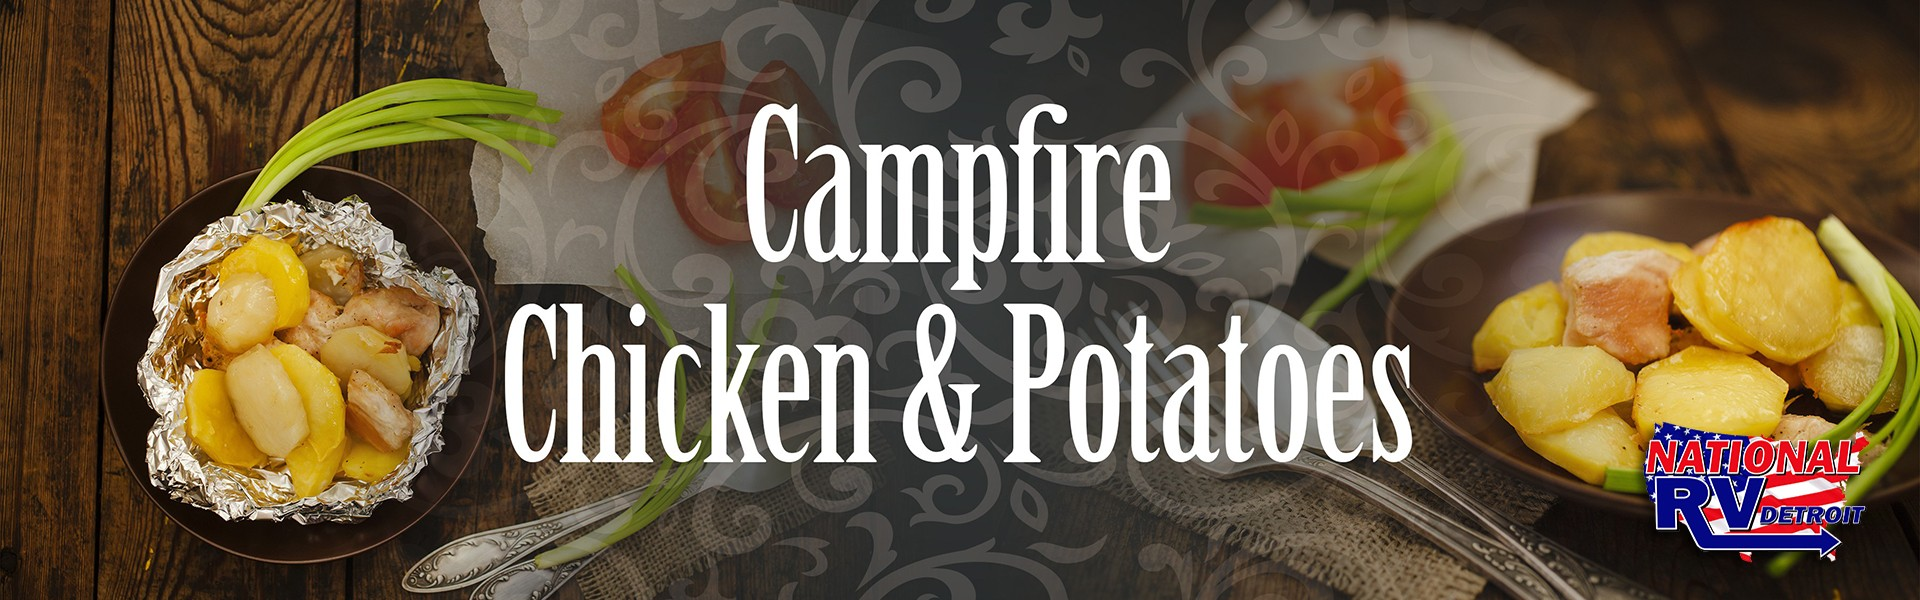 campfire chicken and potatoes banner